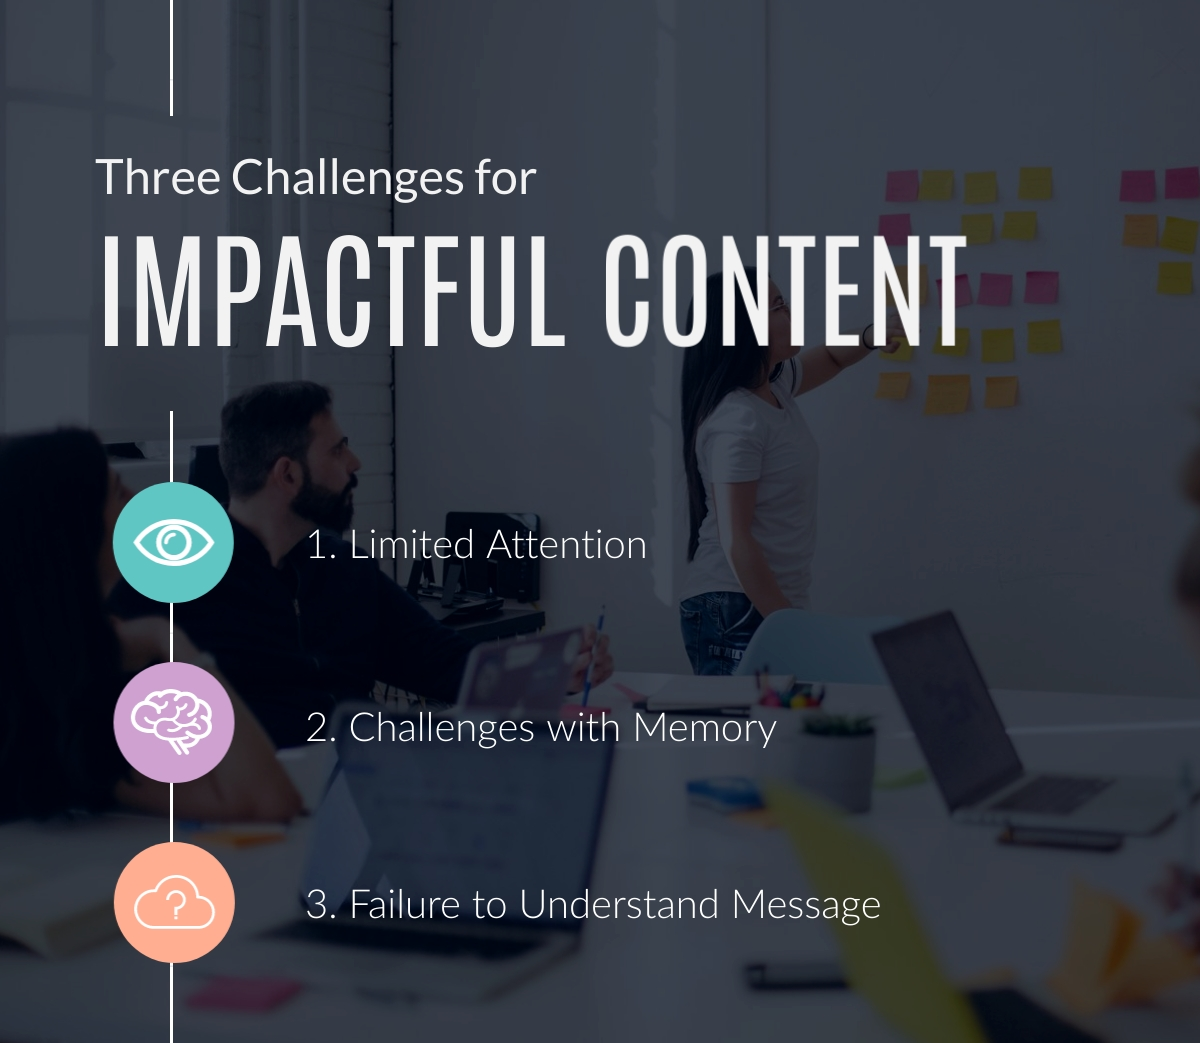 Three Challenges for Impactful Content - Infographic Template